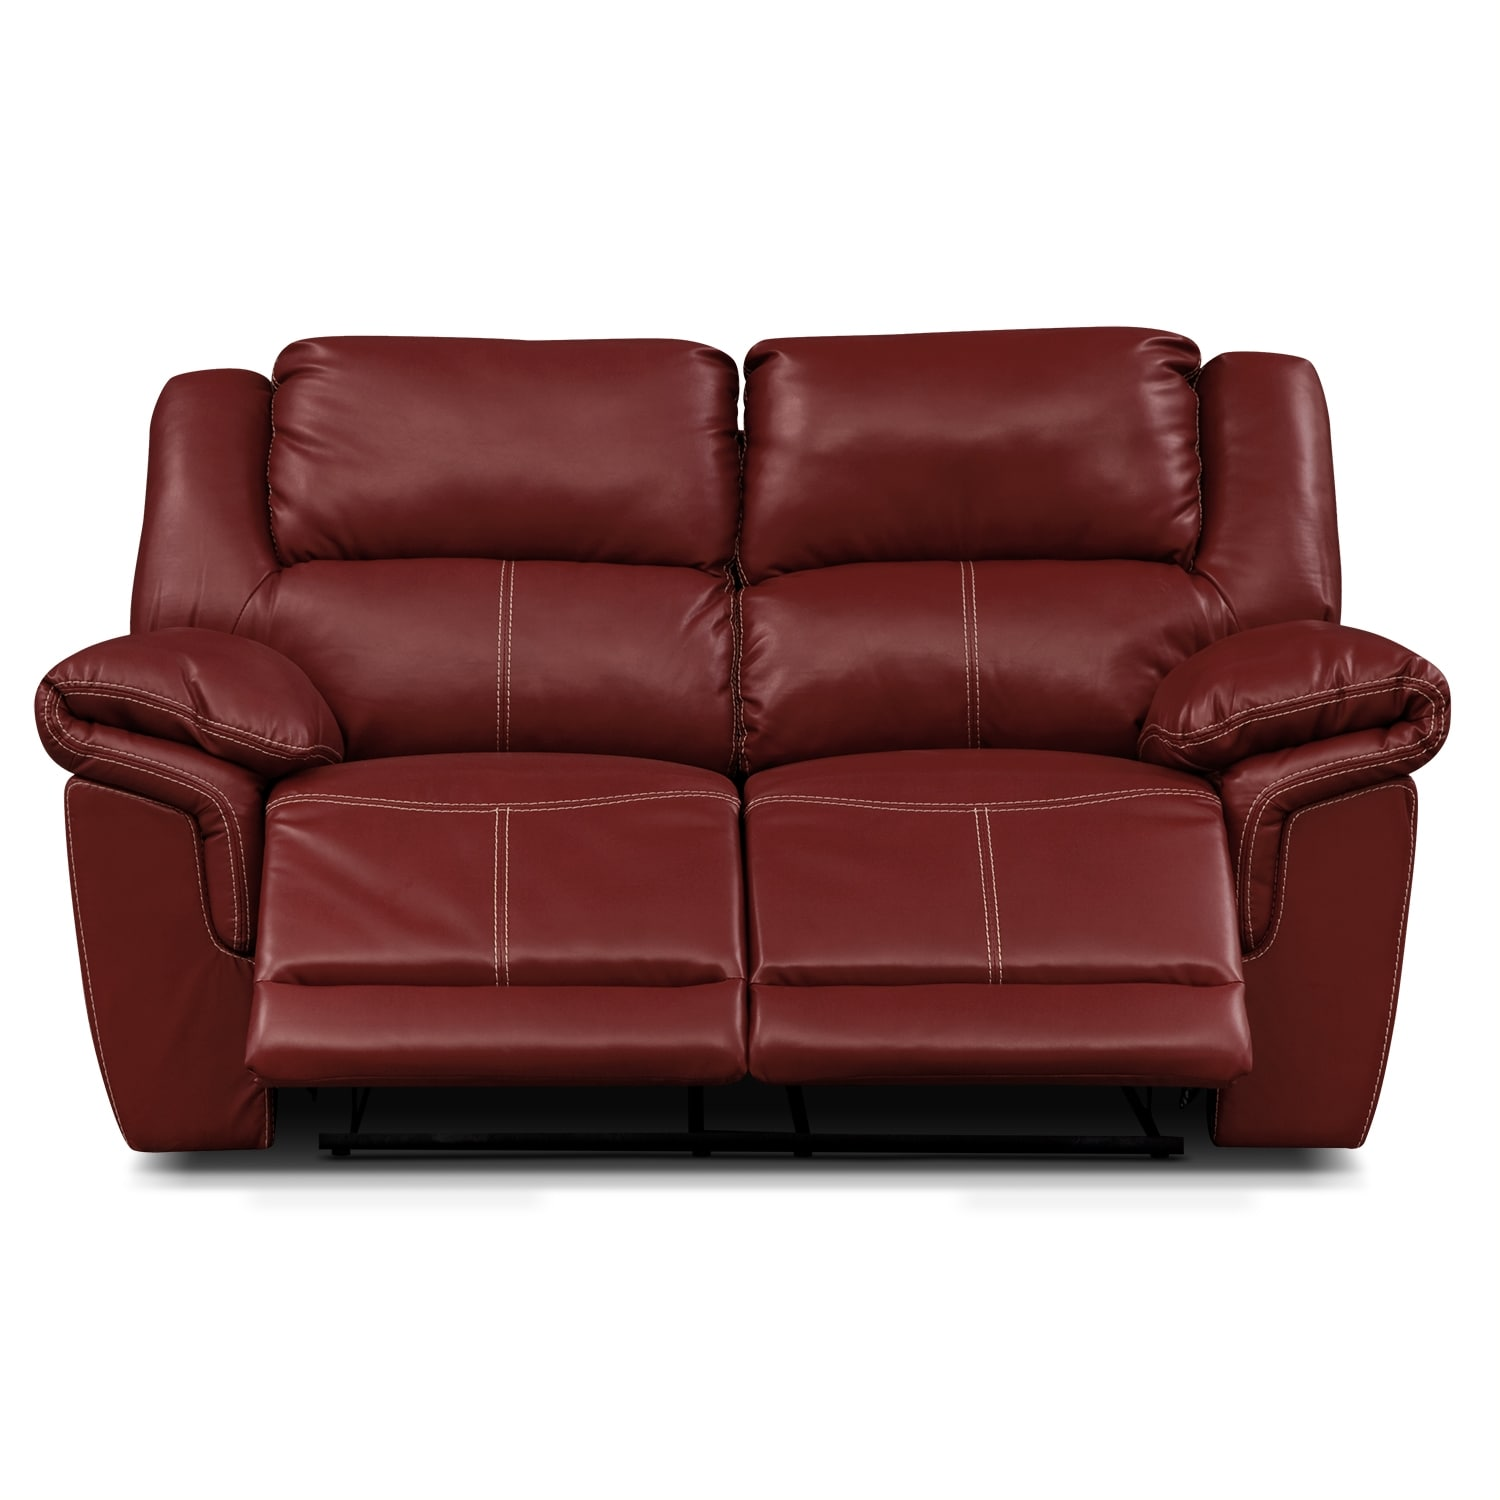 Jaguar Ii Leather Dual Reclining Loveseat Value City Furniture